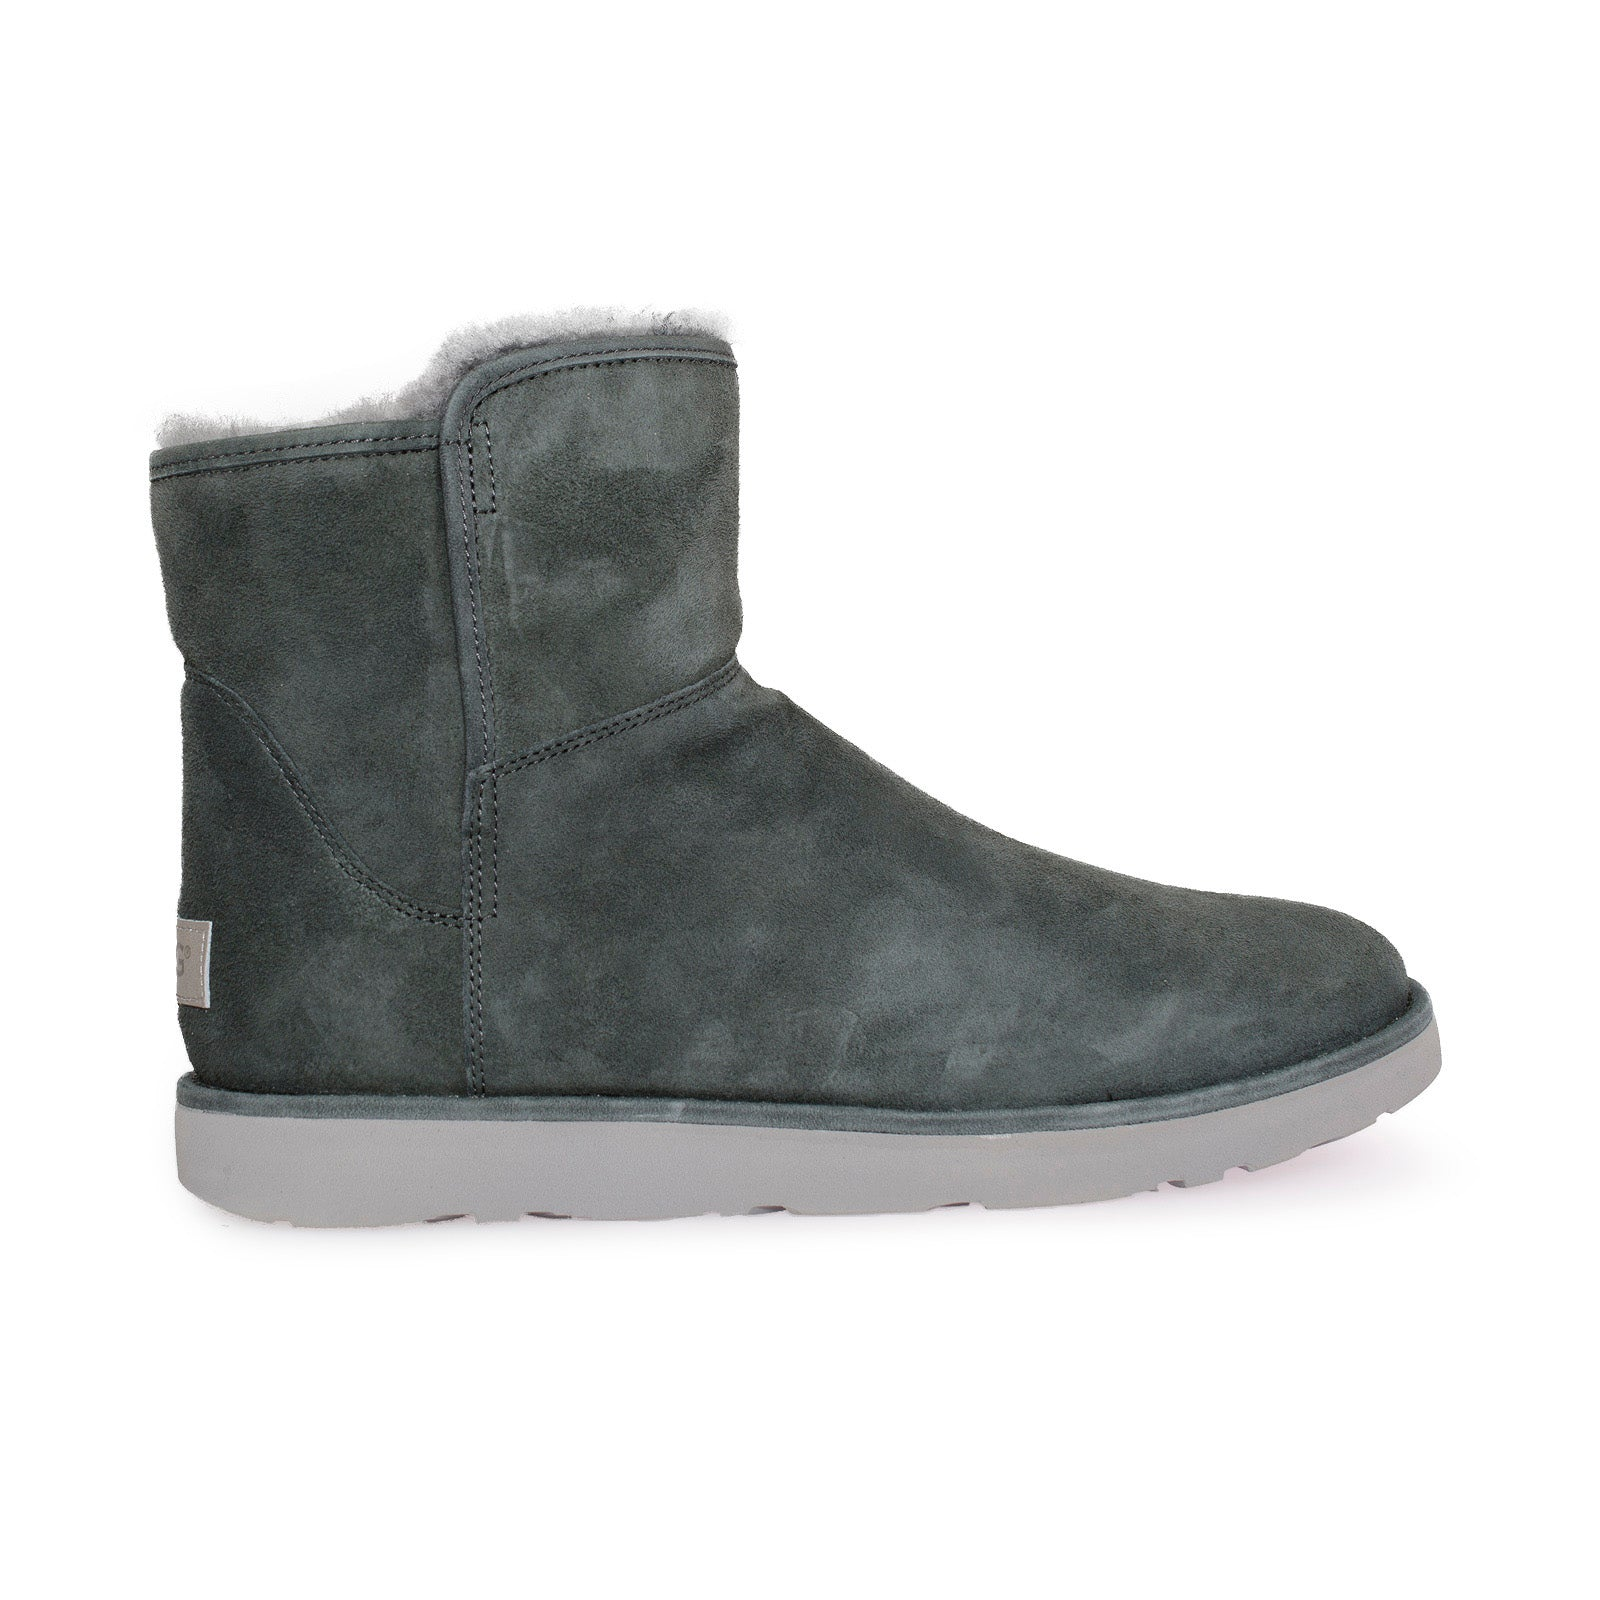 aeb0cec5704 Women's Boots Tagged